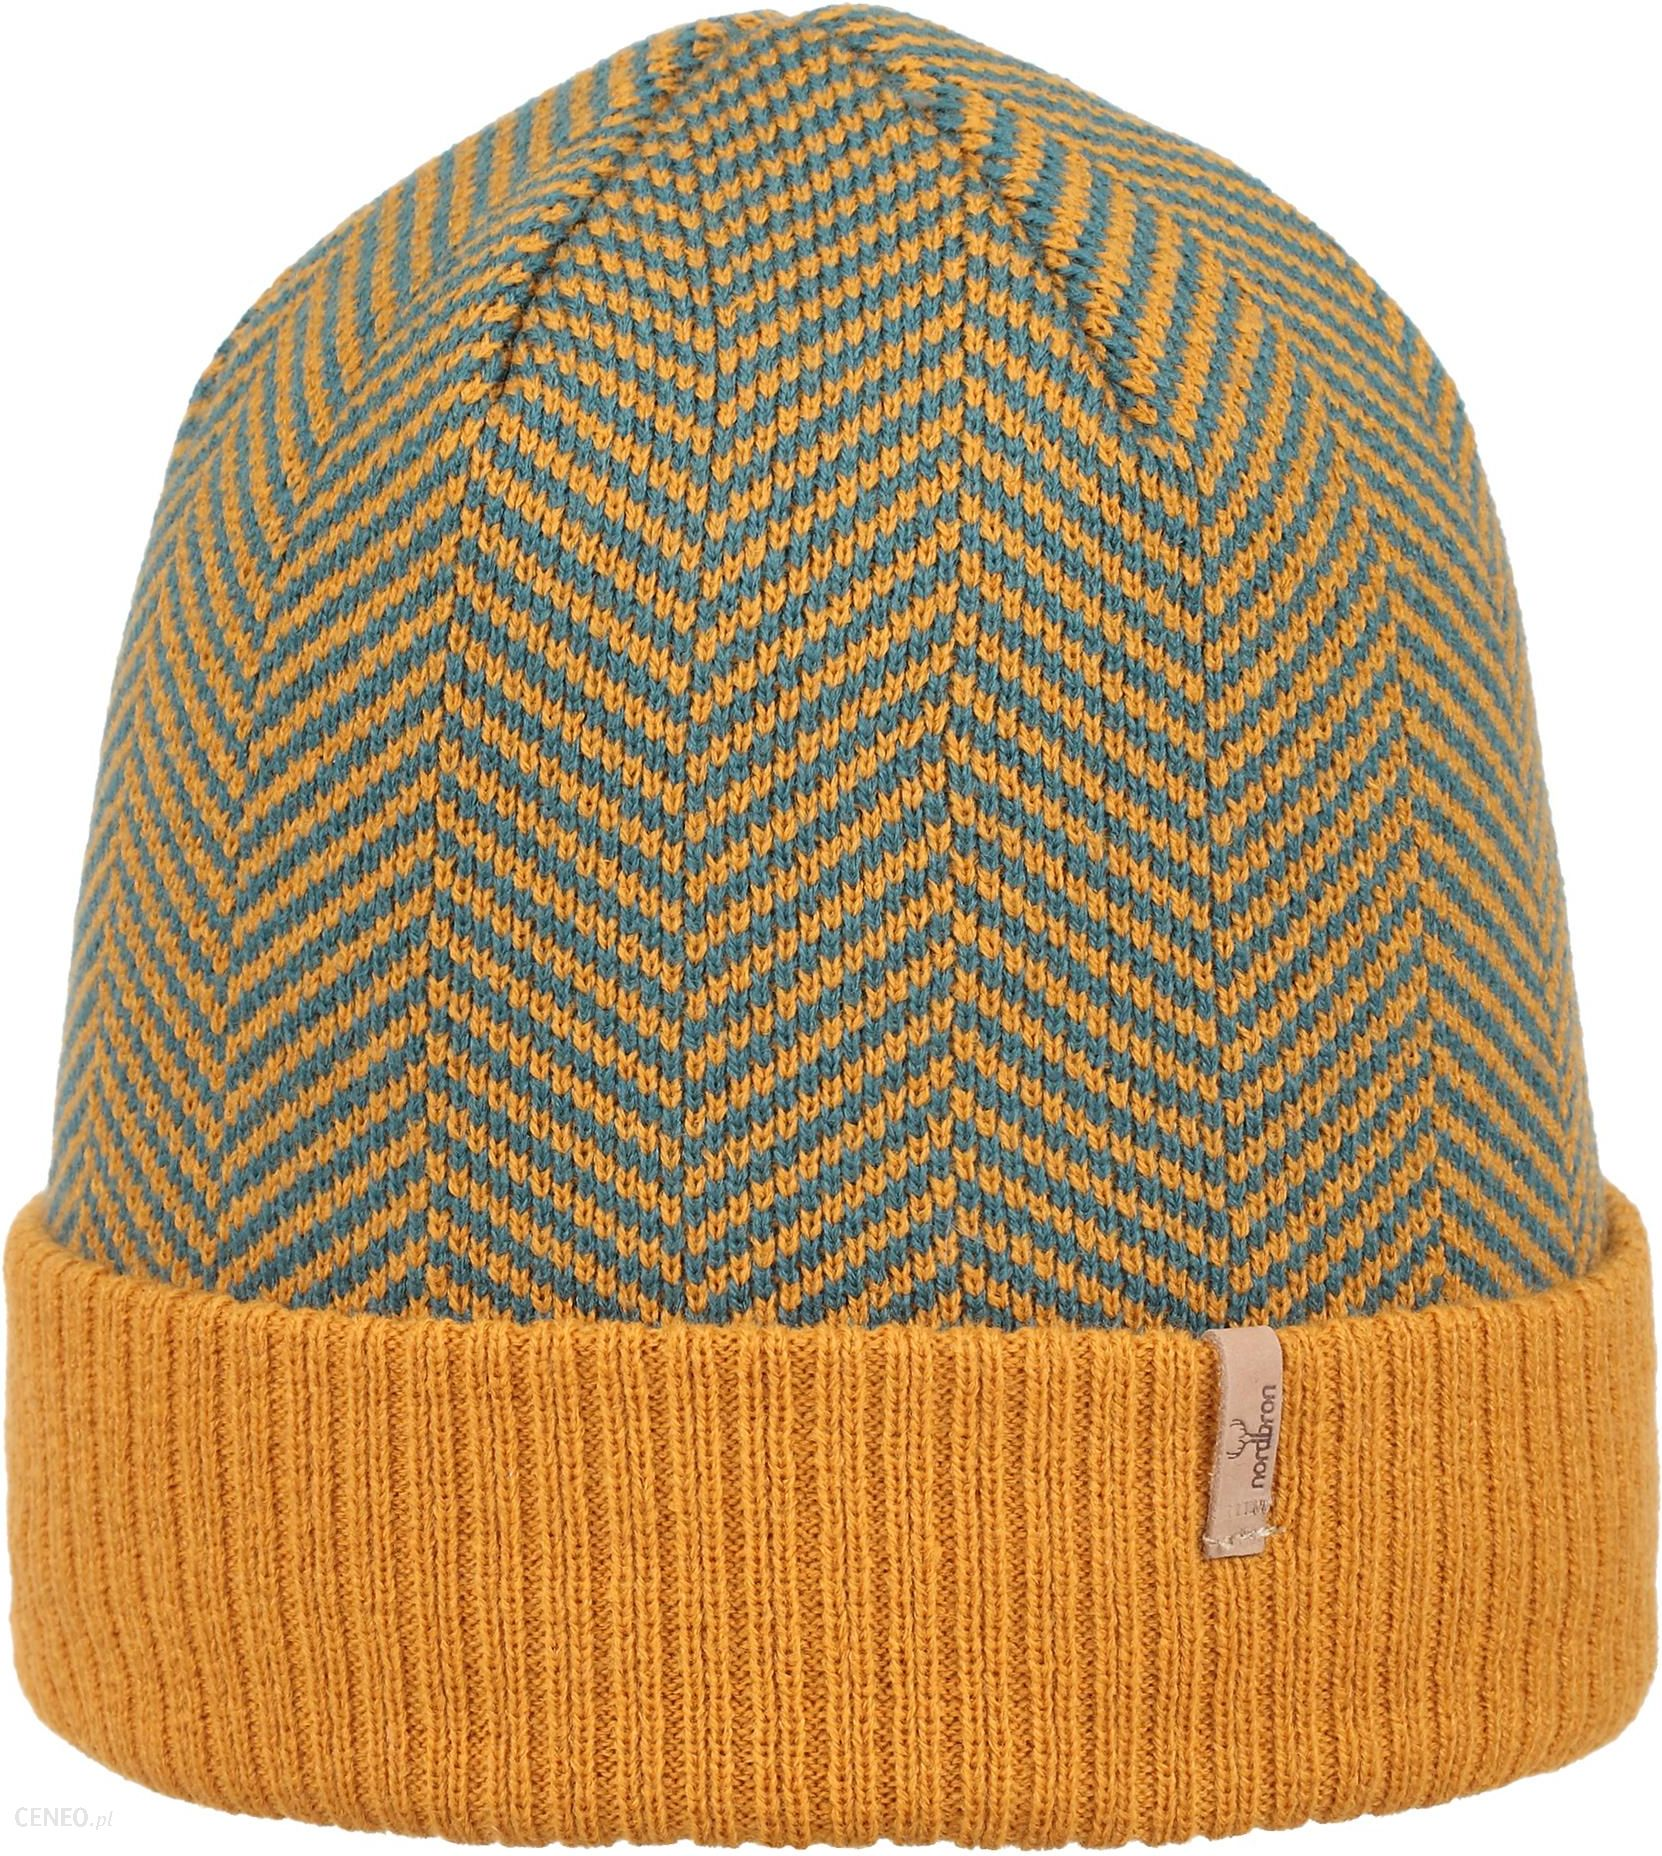 NORDBRON BENDER BEANIE GOLDEN BROWN - Ceny i opinie - Ceneo.pl 8d52784a898